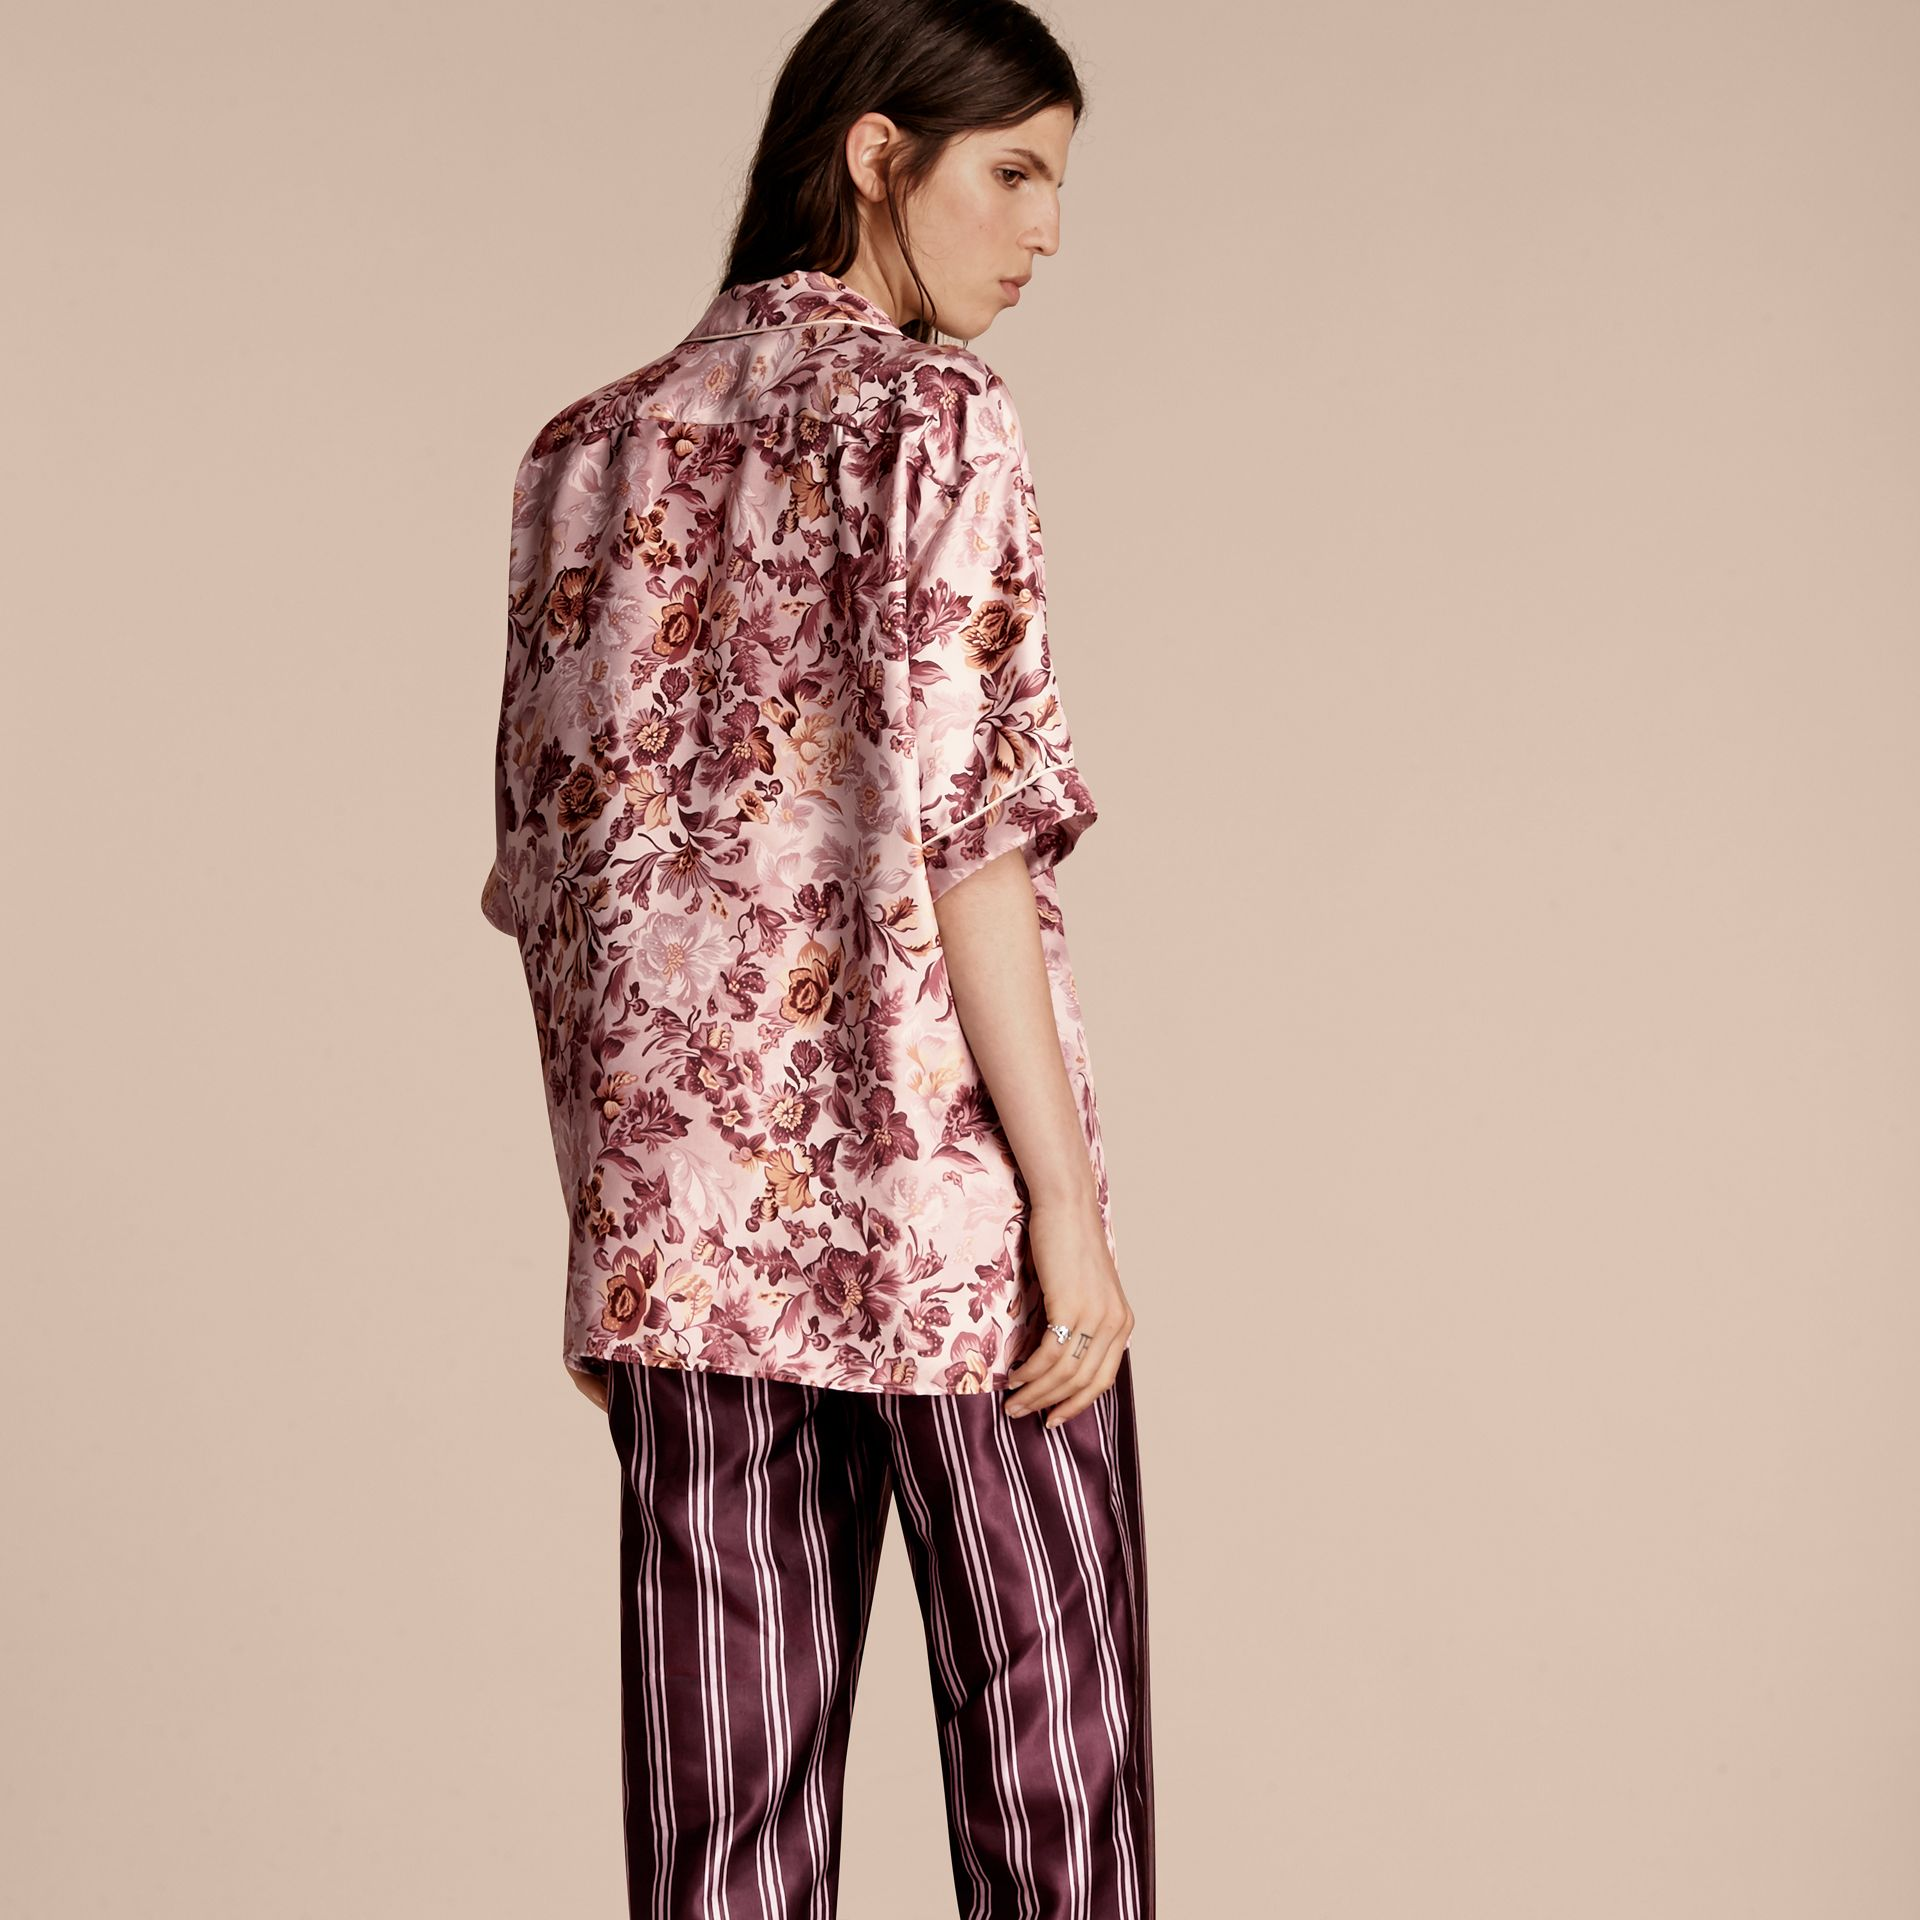 Pink heather Short-sleeved Floral Print Silk Pyjama-style Shirt Pink Heather - gallery image 3